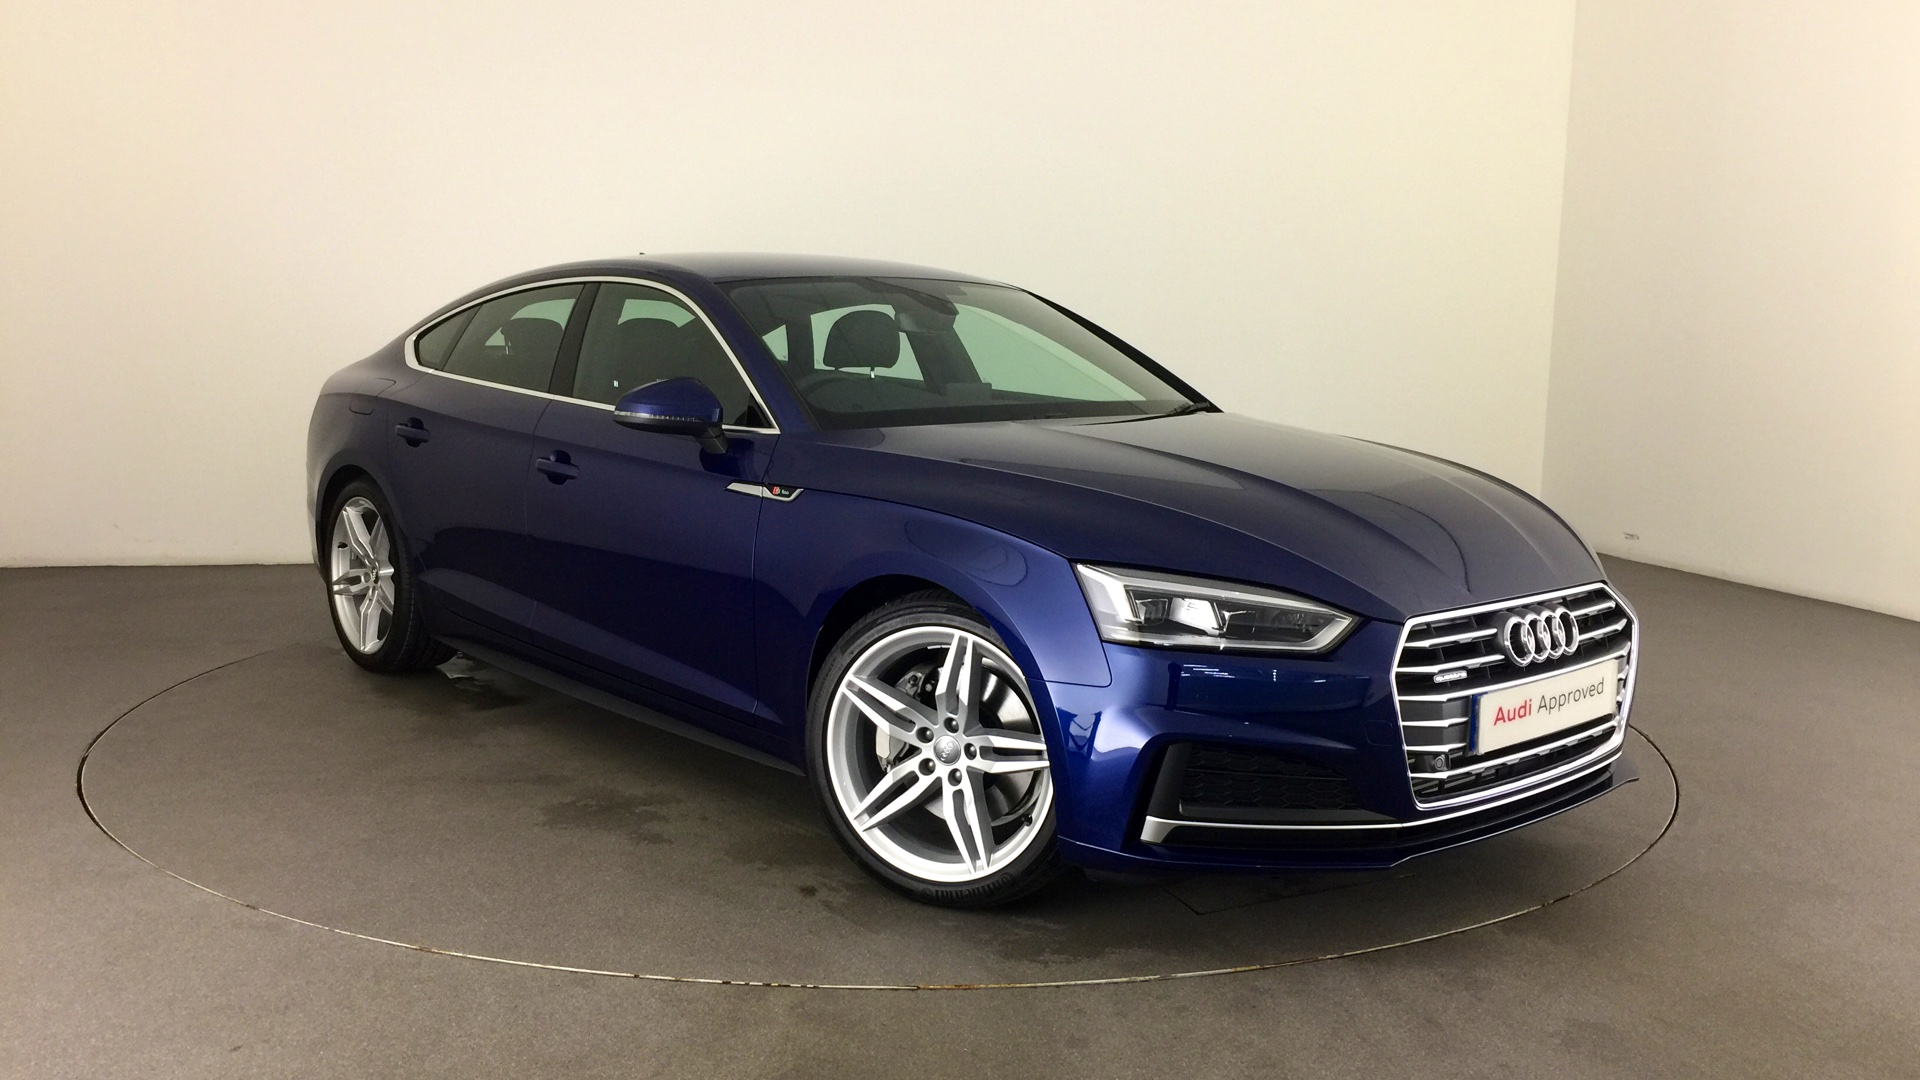 approved used audi a5 sportback s line 2 0 tfsi quattro 252 ps s tronic hg67lfm 36 000. Black Bedroom Furniture Sets. Home Design Ideas